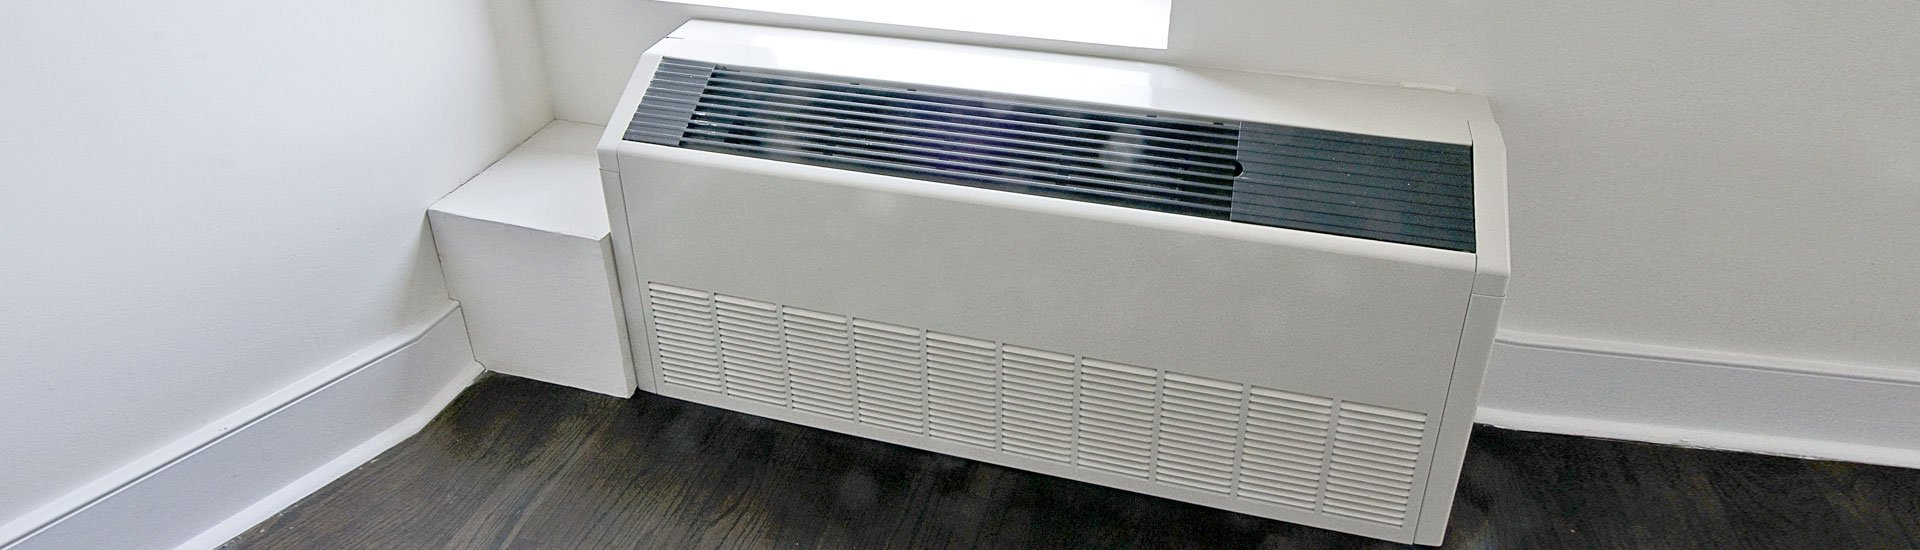 Residential AC